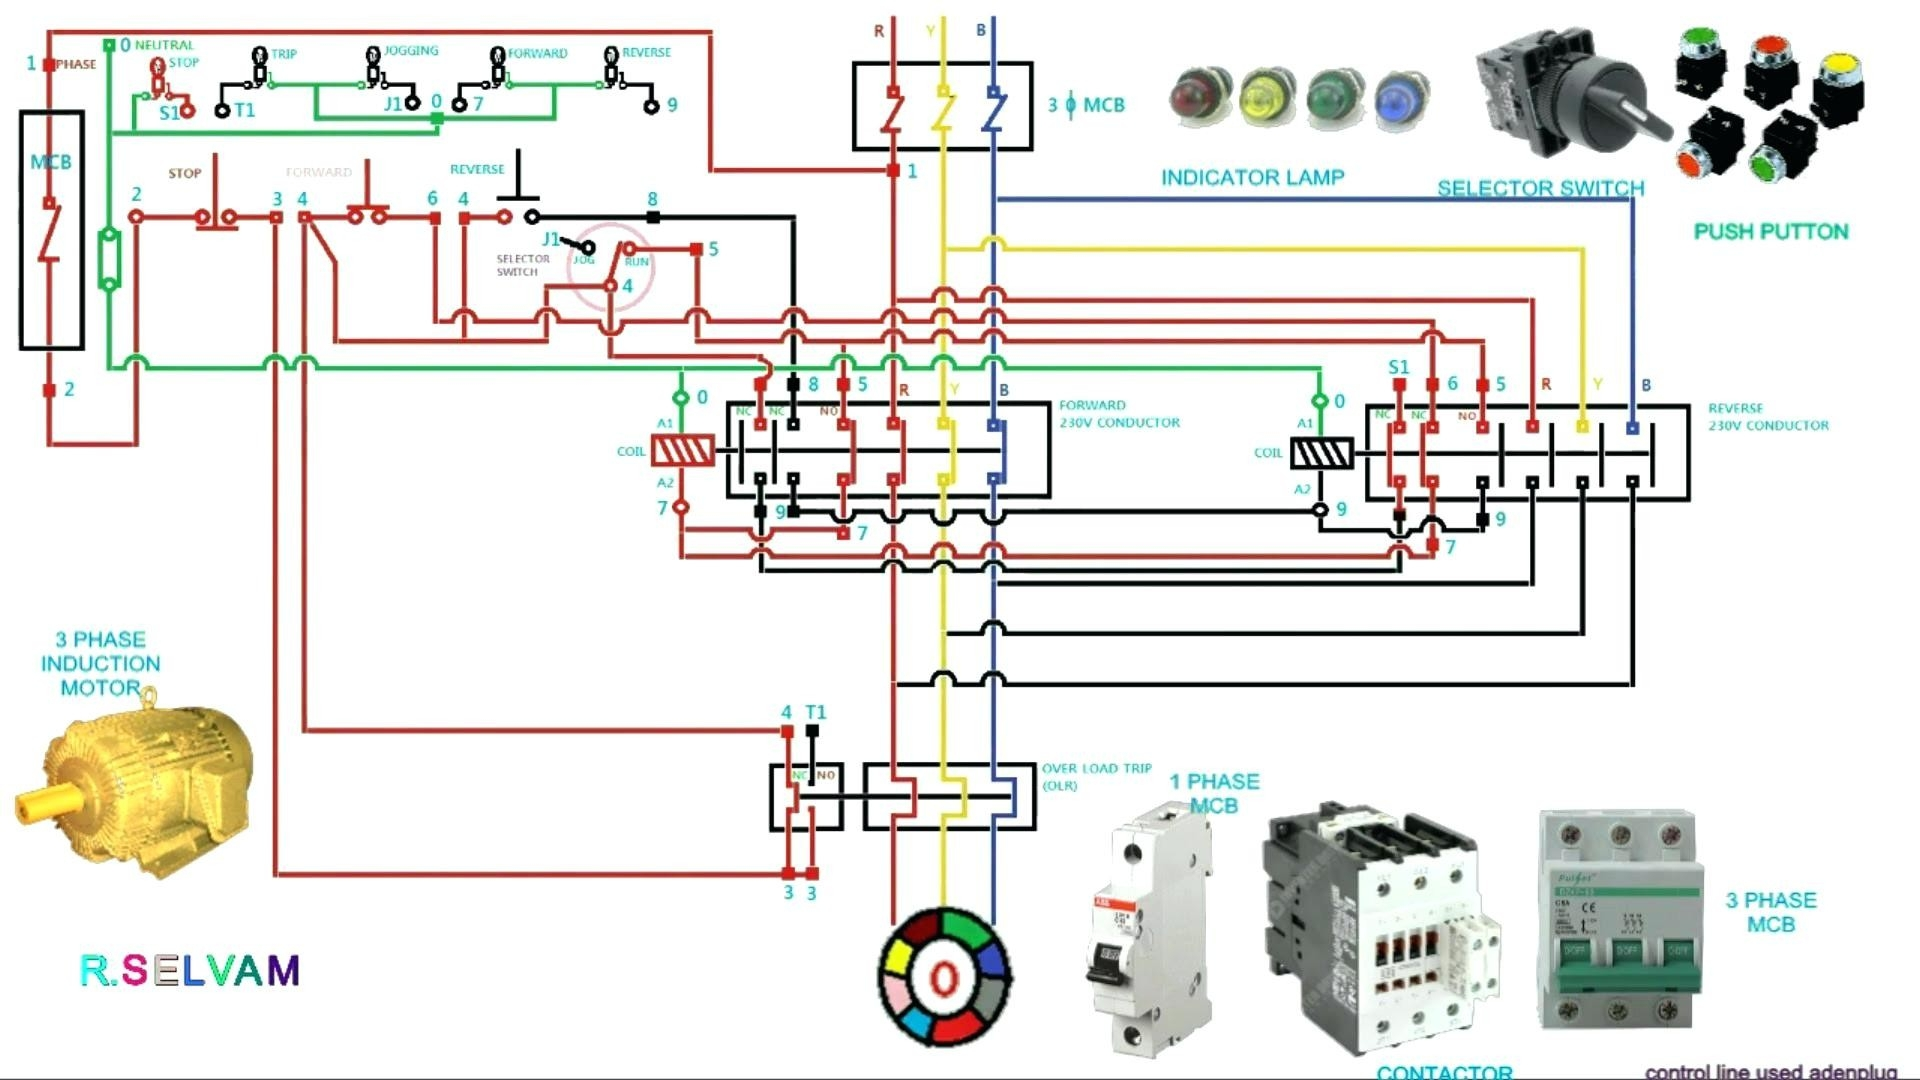 motor starter wiring diagram start stop Download-3 phase contactor wiring diagram start stop Download Circuit Diagram Contactor Best 3 Phase Motor 2-h